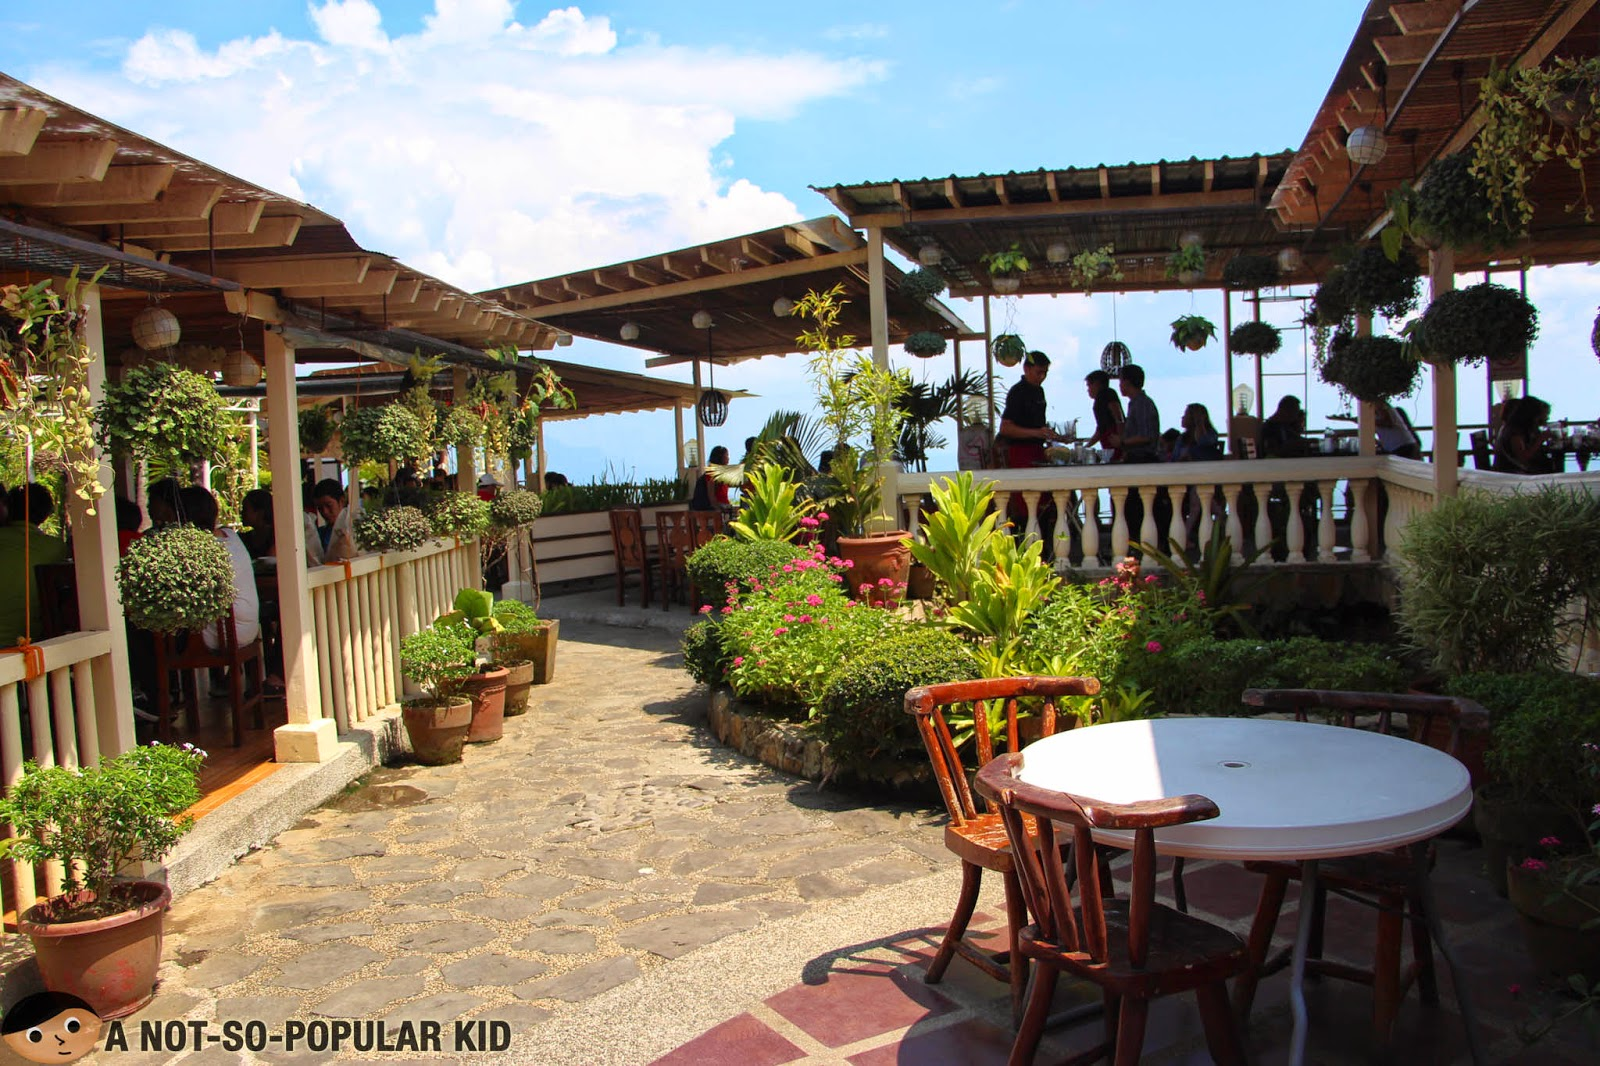 The outdoor area of RSM Restaurant in Tagaytay